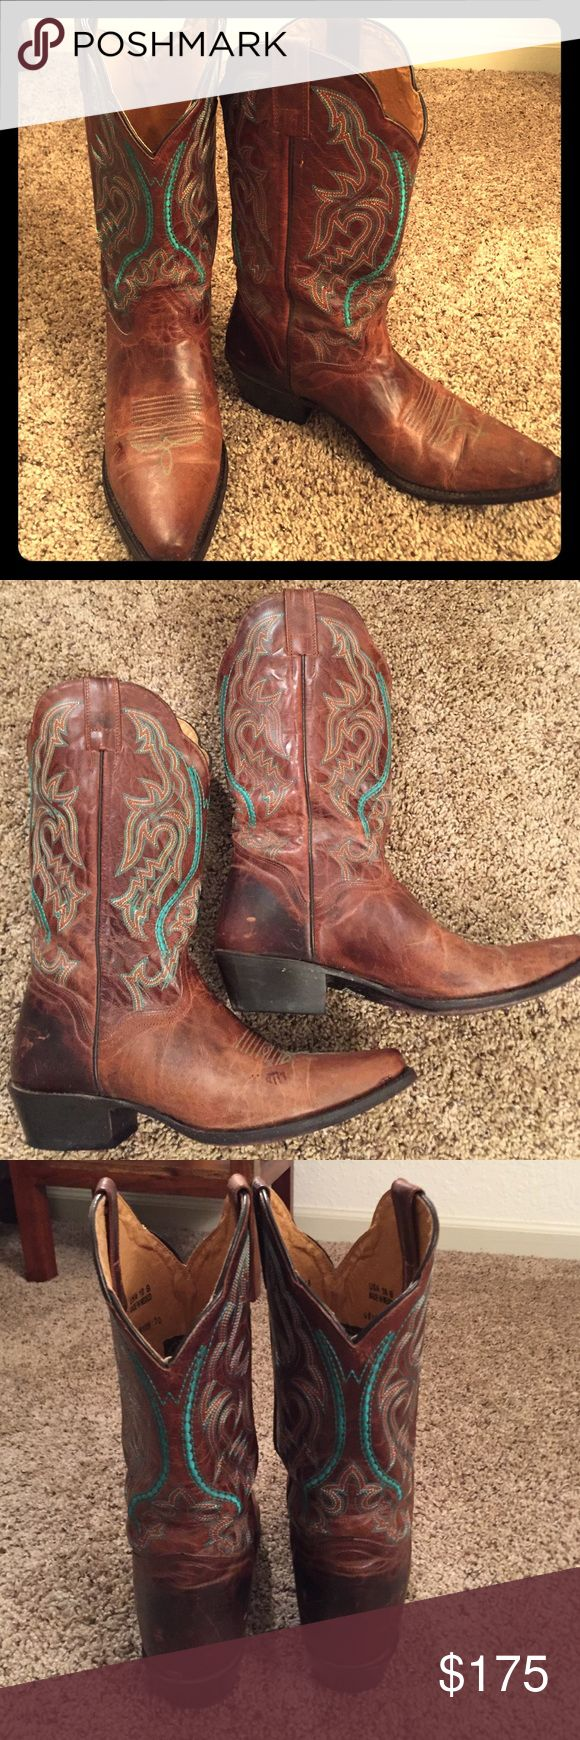 JB Dillion Teal stitching cowboy boots The turquoise stitching on these boots at a pop of color to a dark brown leather boot. Size 10 (width B). Hardly worn with only a few scuffs on the heel of the boots. These are a wardrobe must have for anyone with a country side 🎼 J. B. Dillion Shoes Heeled Boots